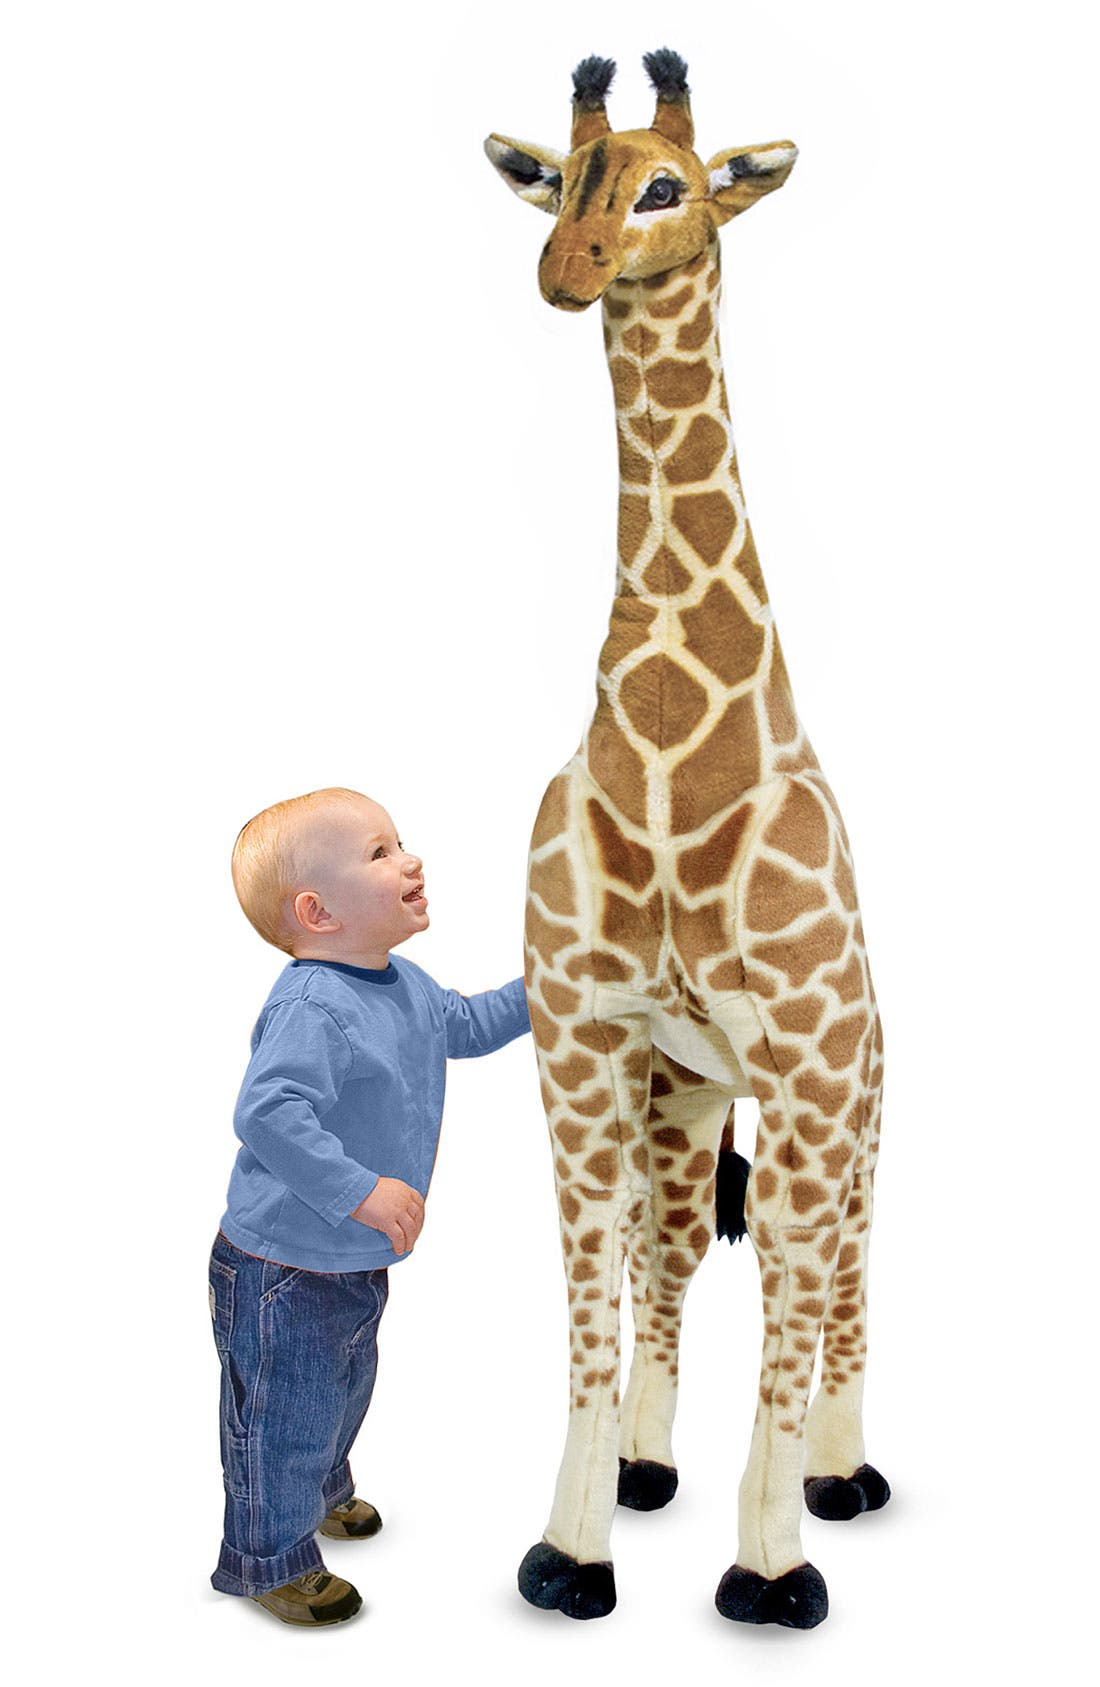 Alternate Image 1 Selected - Melissa & Doug Oversized Giraffe